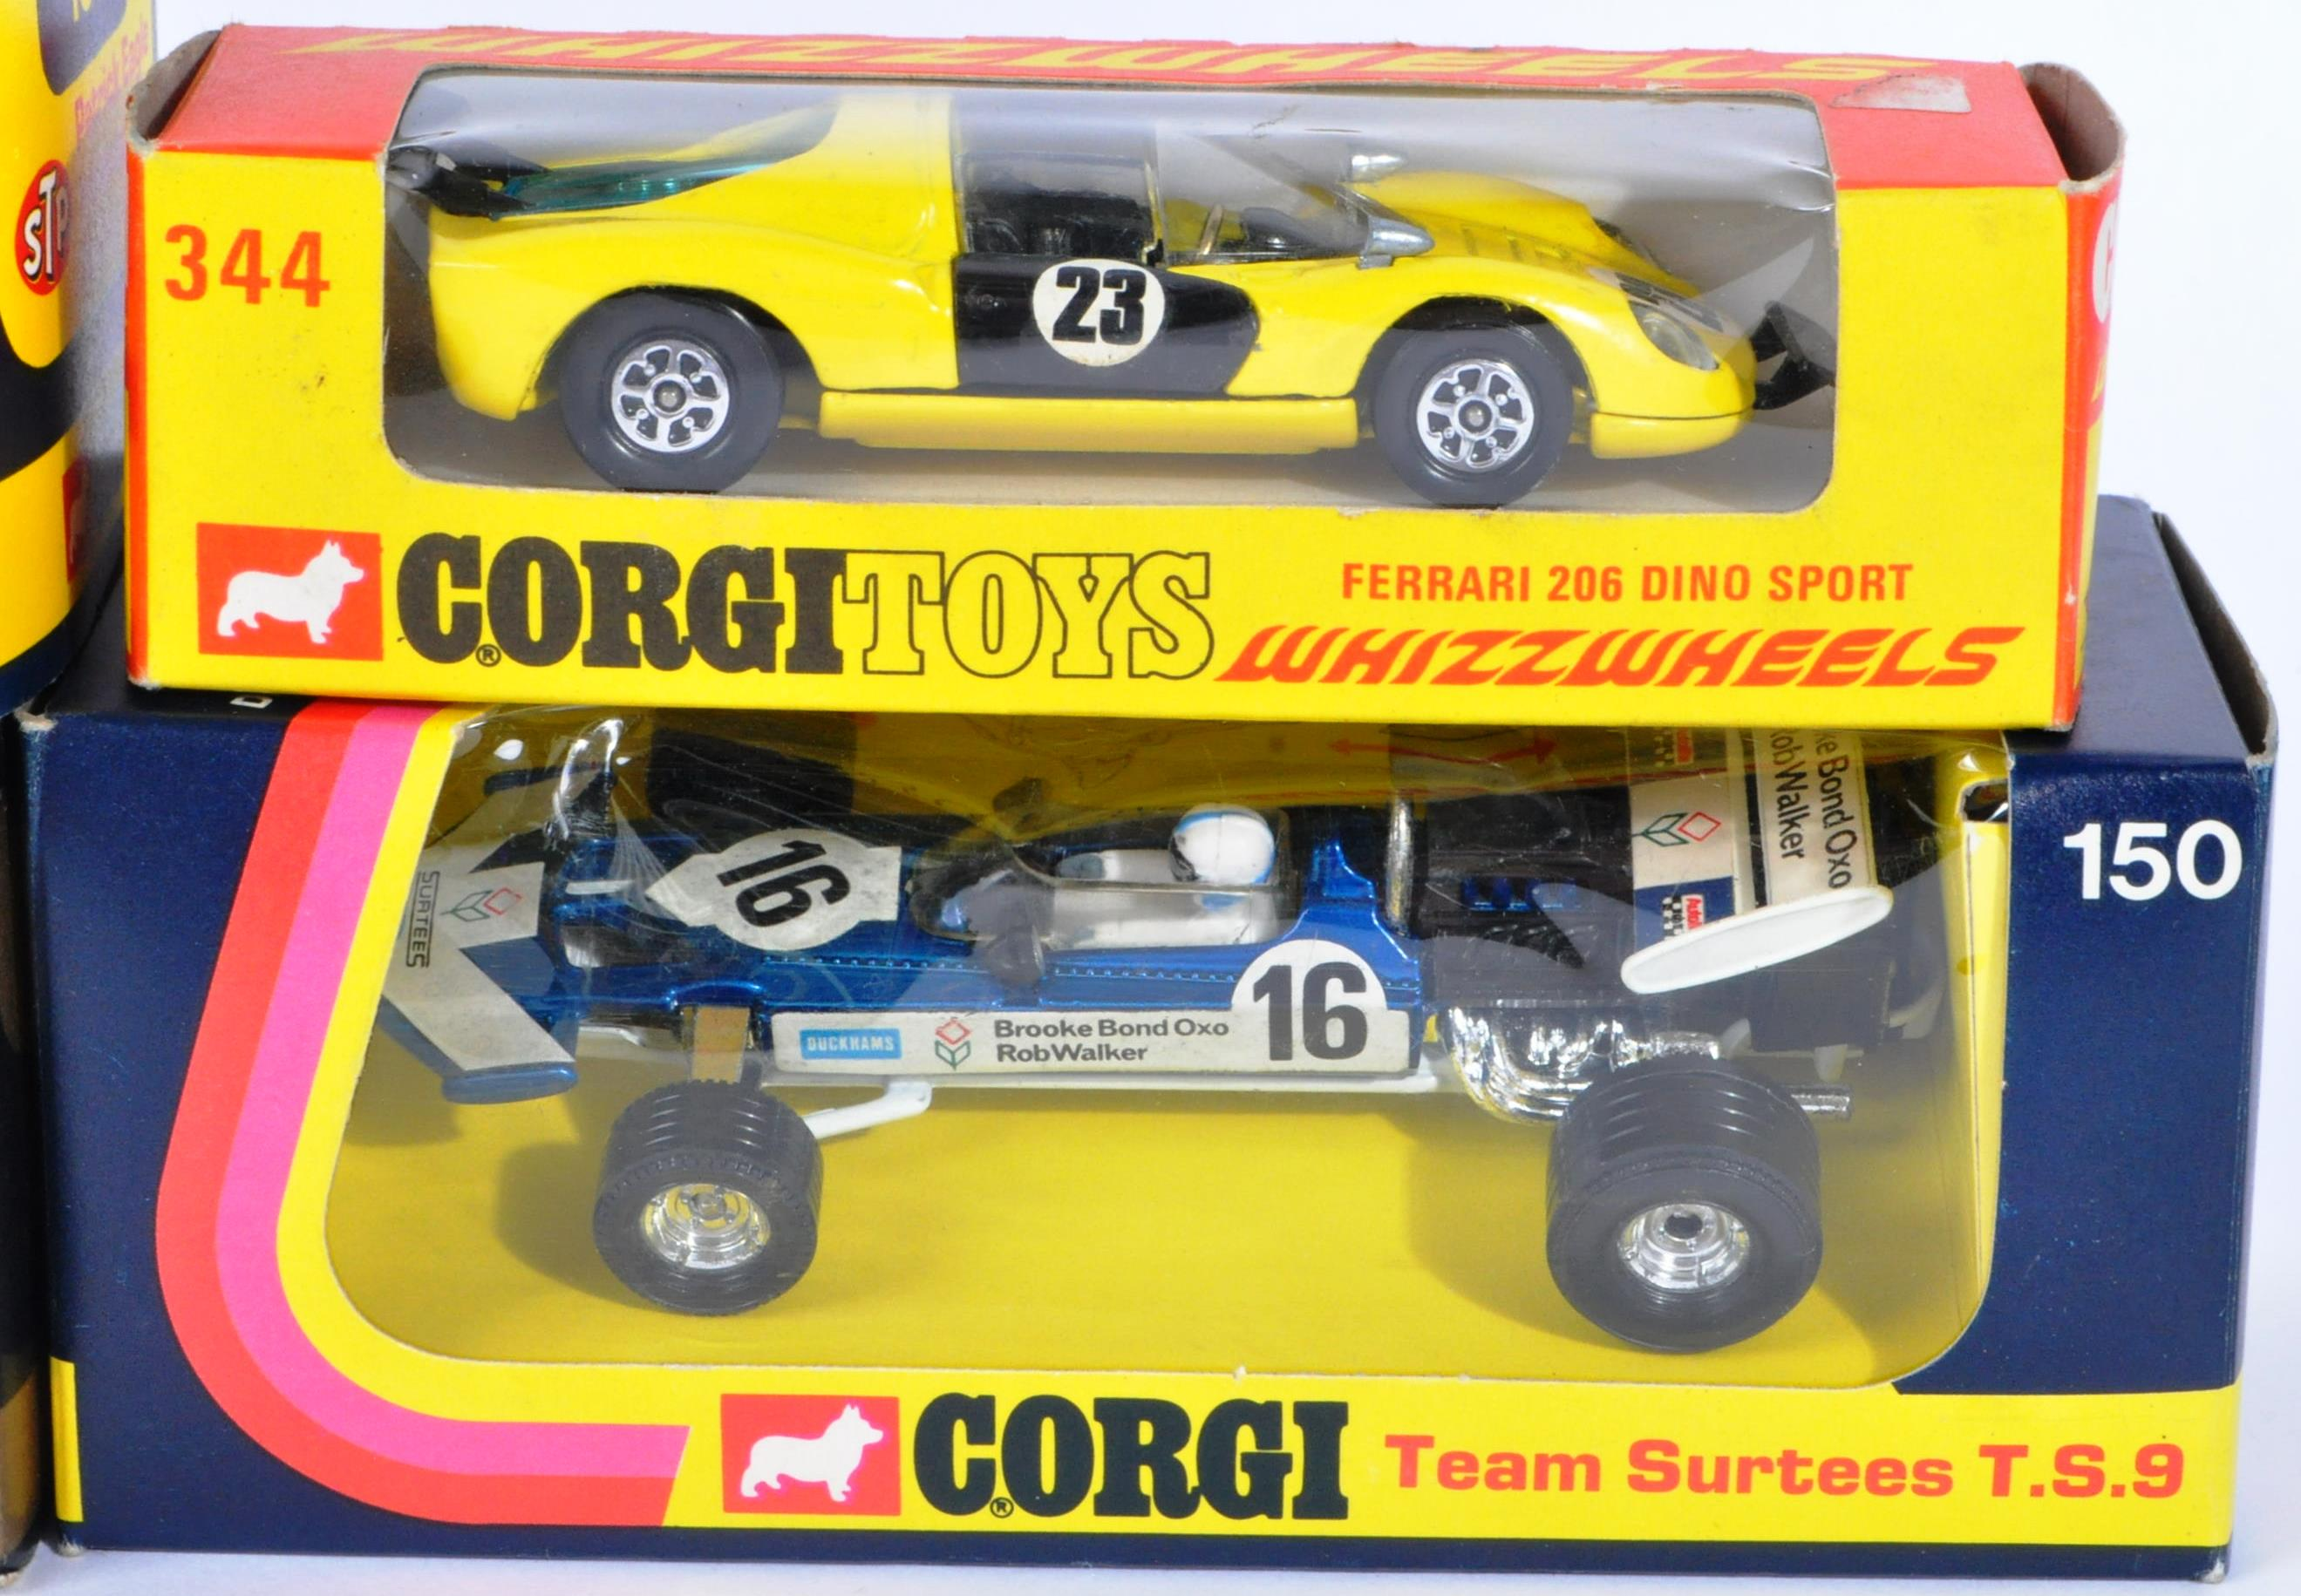 COLLECTION OF ASSORTED VINTAGE CORGI MADE DIECAST MODELS - Image 6 of 6